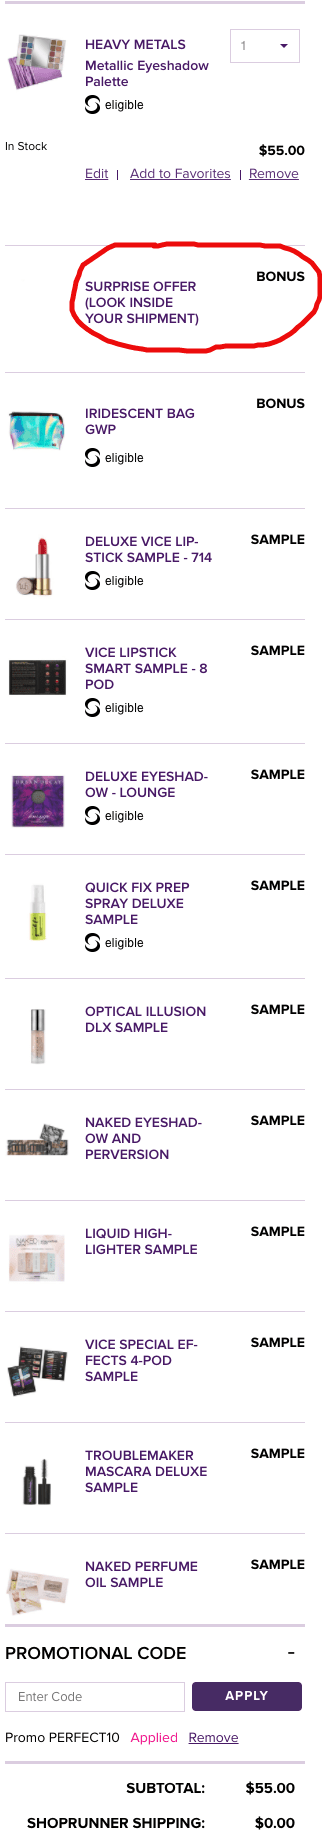 urban decay gwp.png